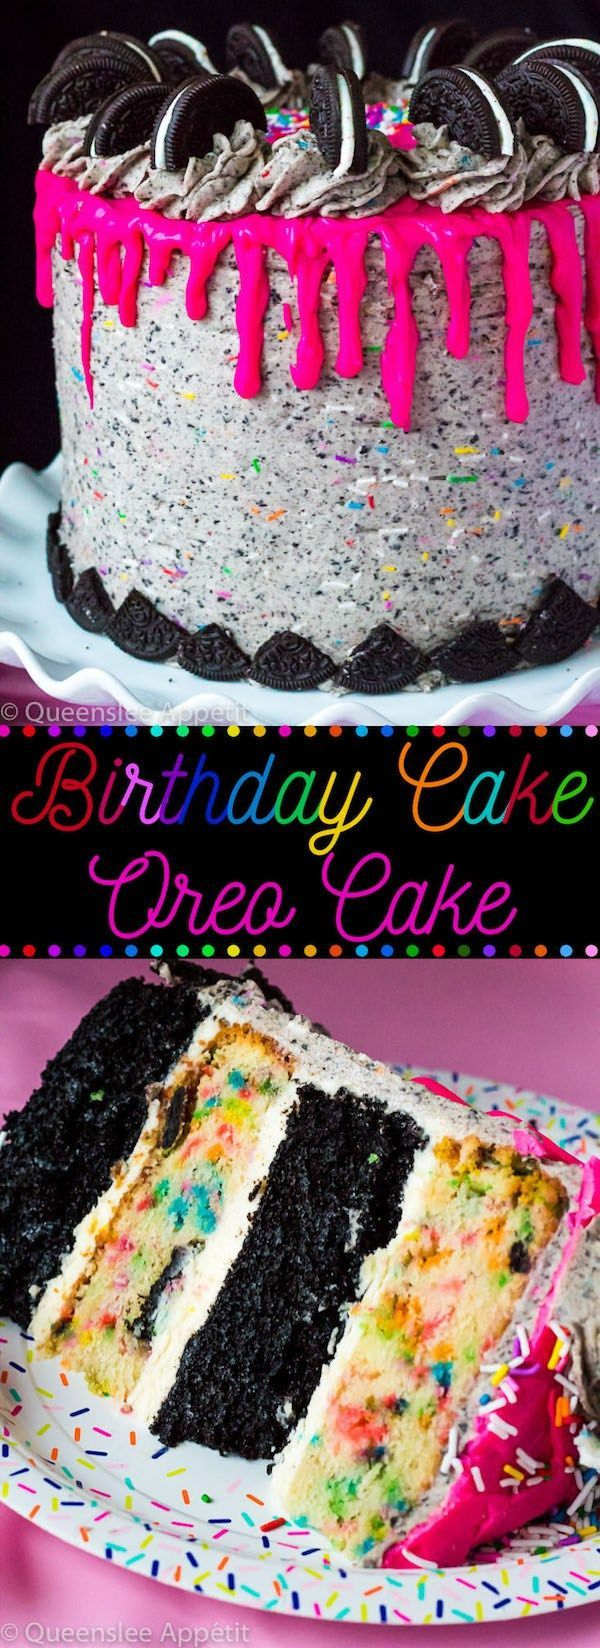 Birthday Cake Oreo Cake ~ Recipe | Queenslee Appétit